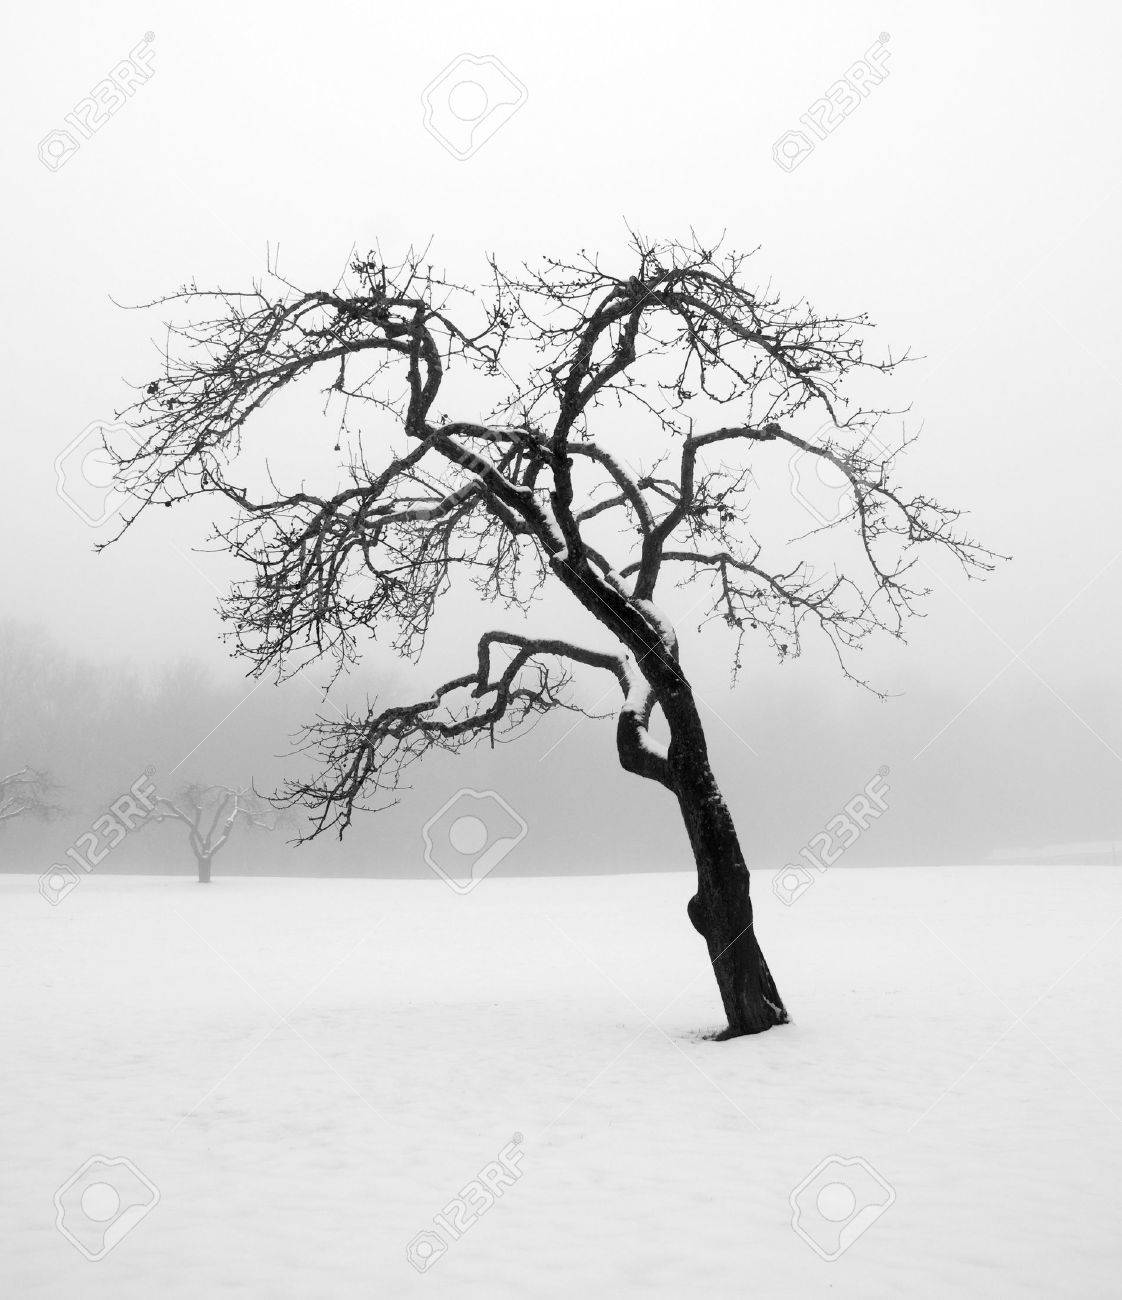 Bare tree in a snowstorm Stock Photo - 8310561